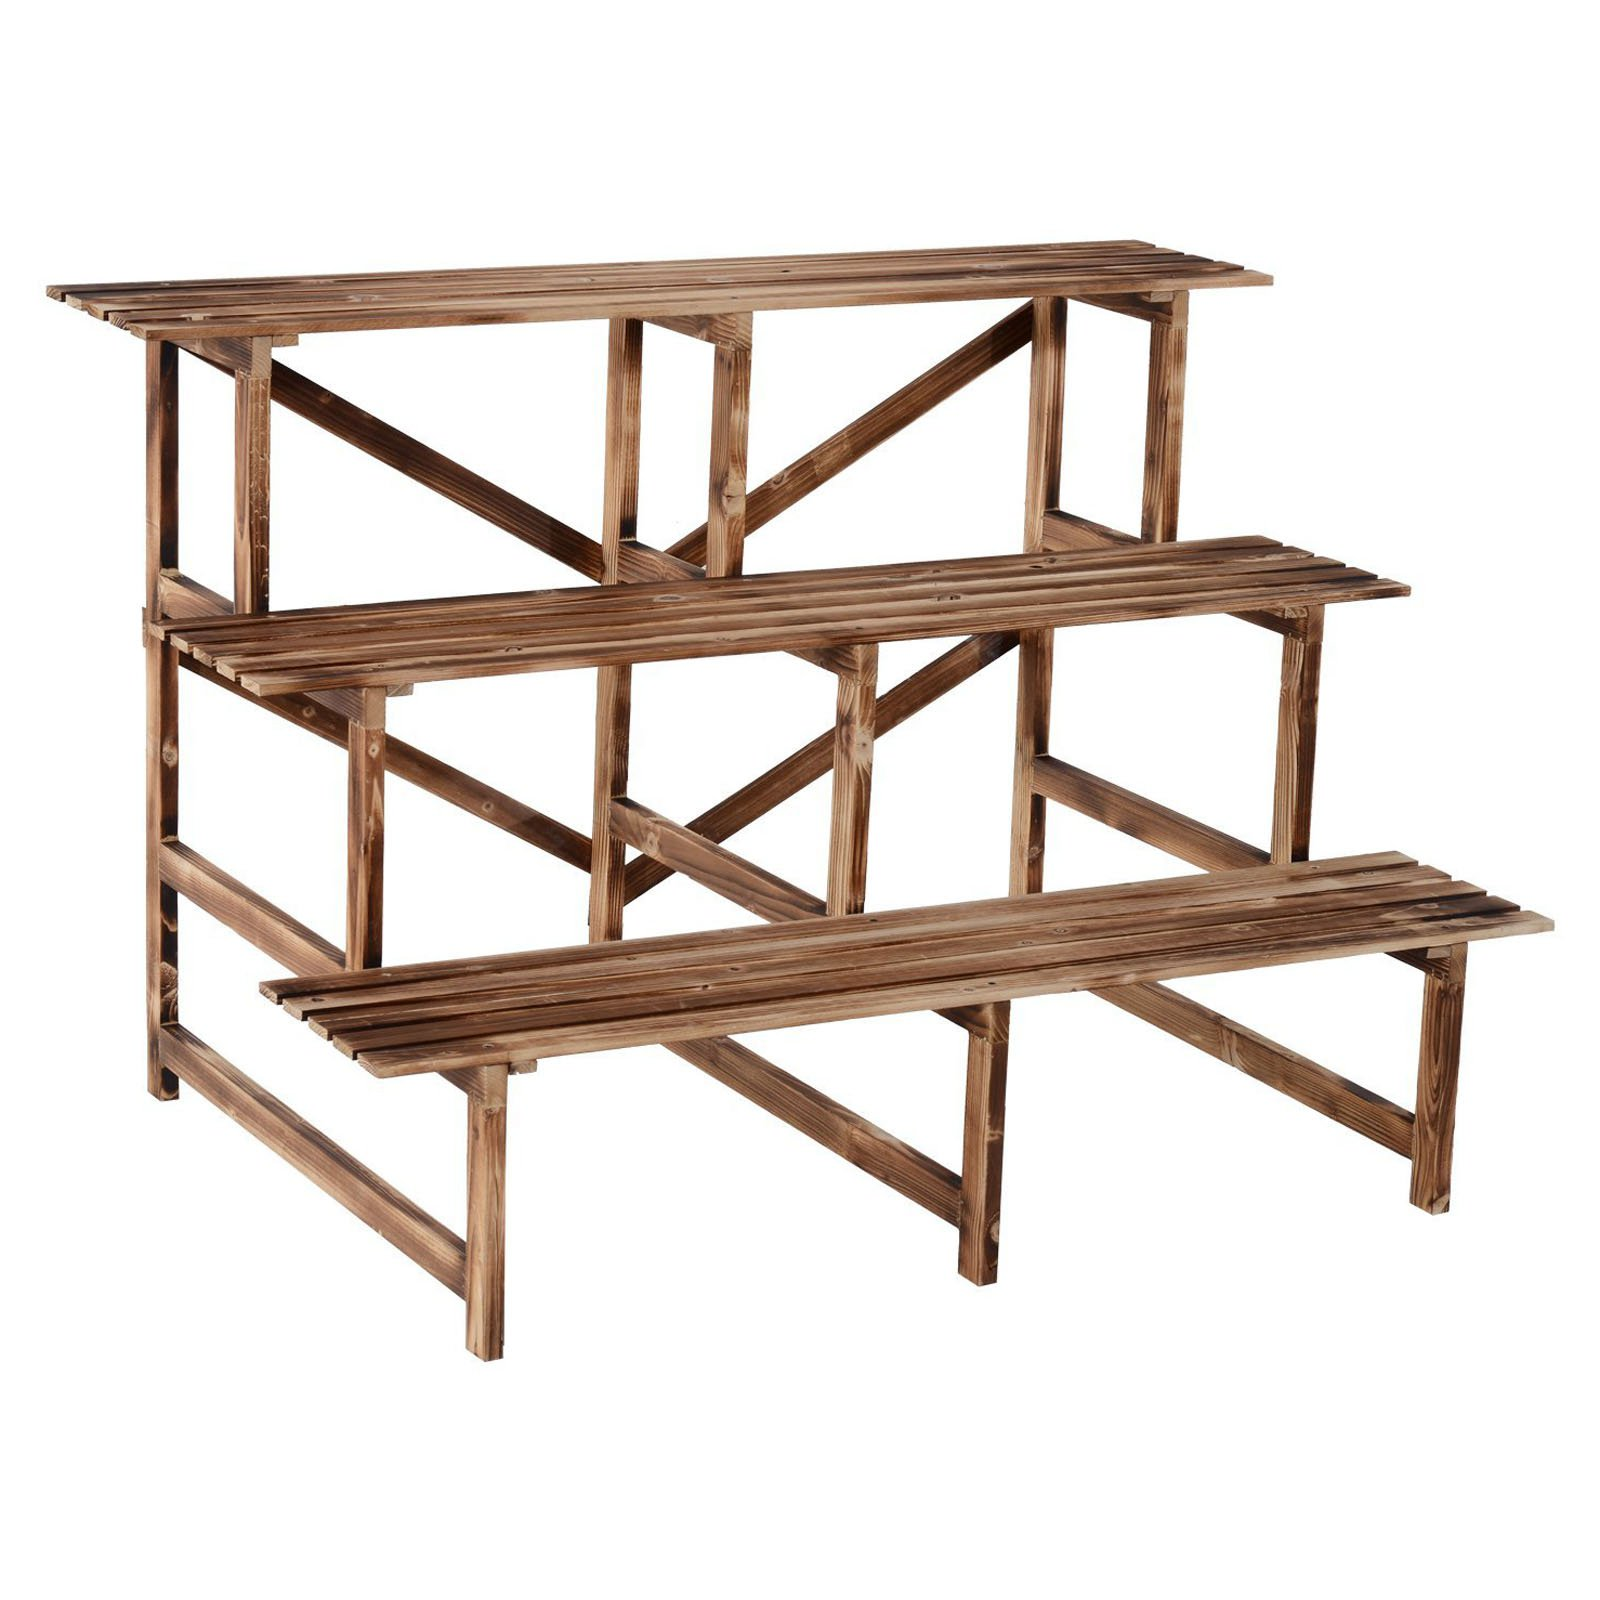 Outsunny 47 in. Wooden 3 Tier Step Style Plant Stand